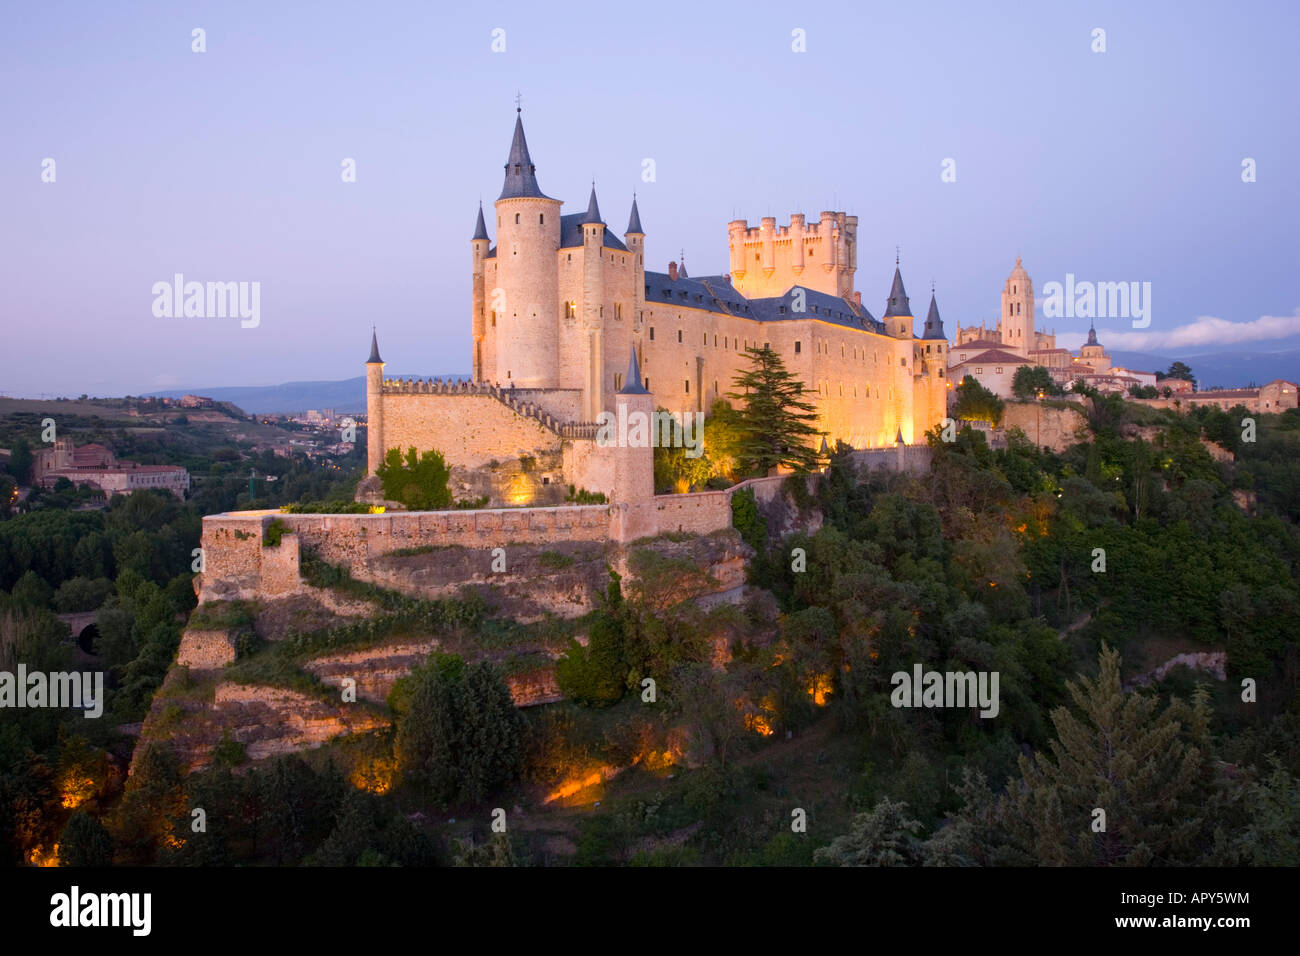 Segovia, Castile and León, Spain. The Alcázar illuminated at dusk, the cathedral visible beyond. - Stock Image